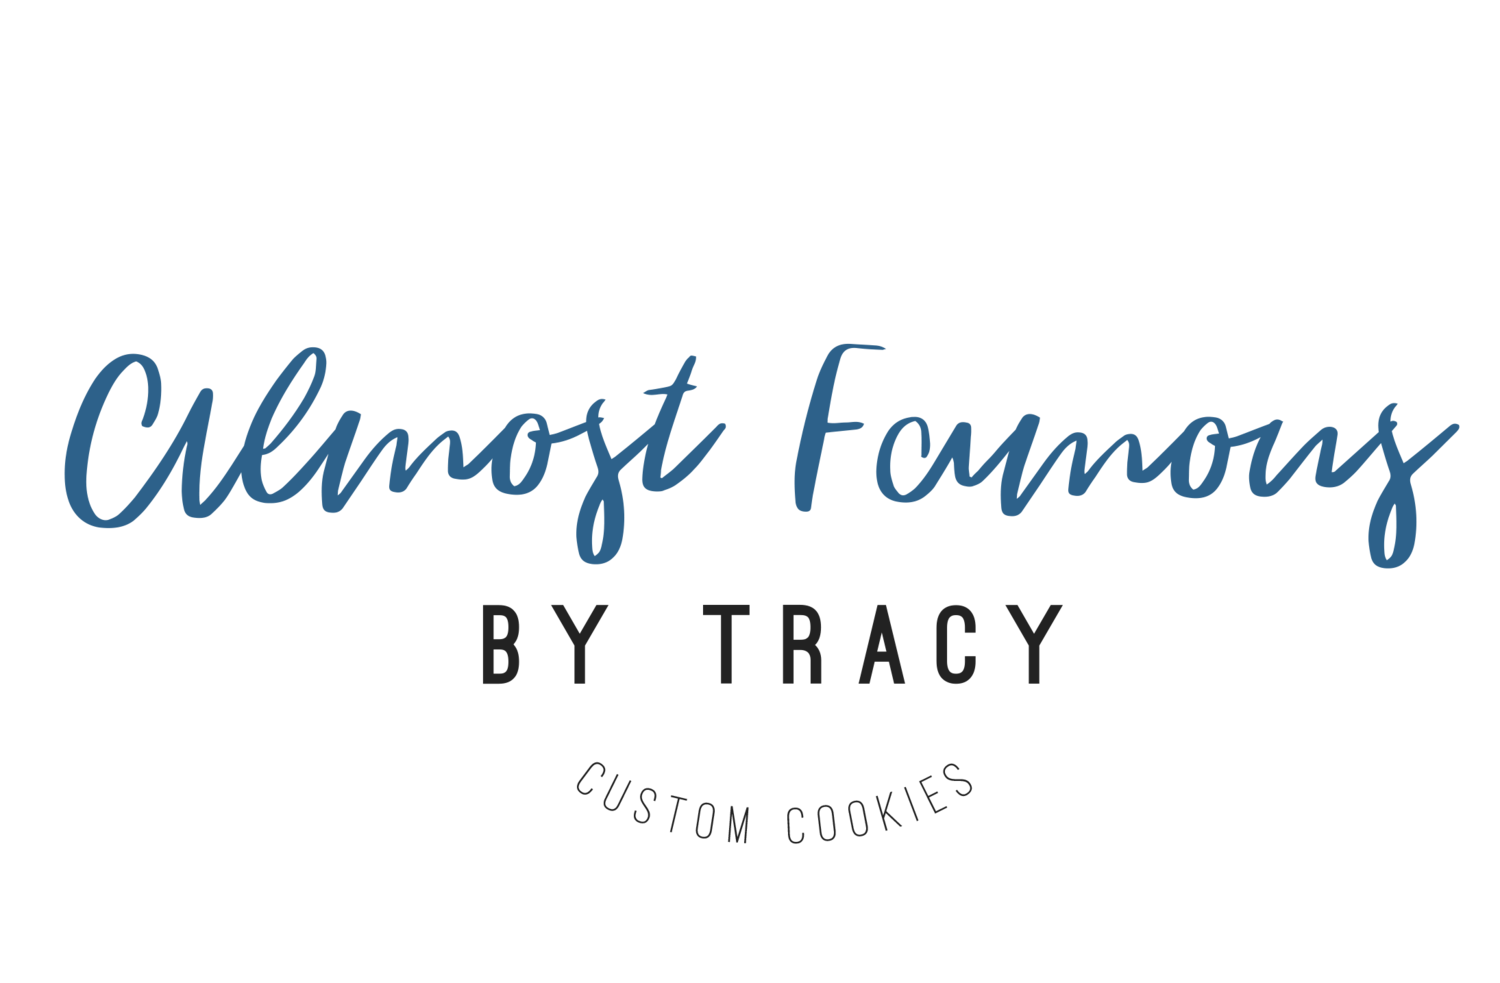 Almost Famous by Tracy